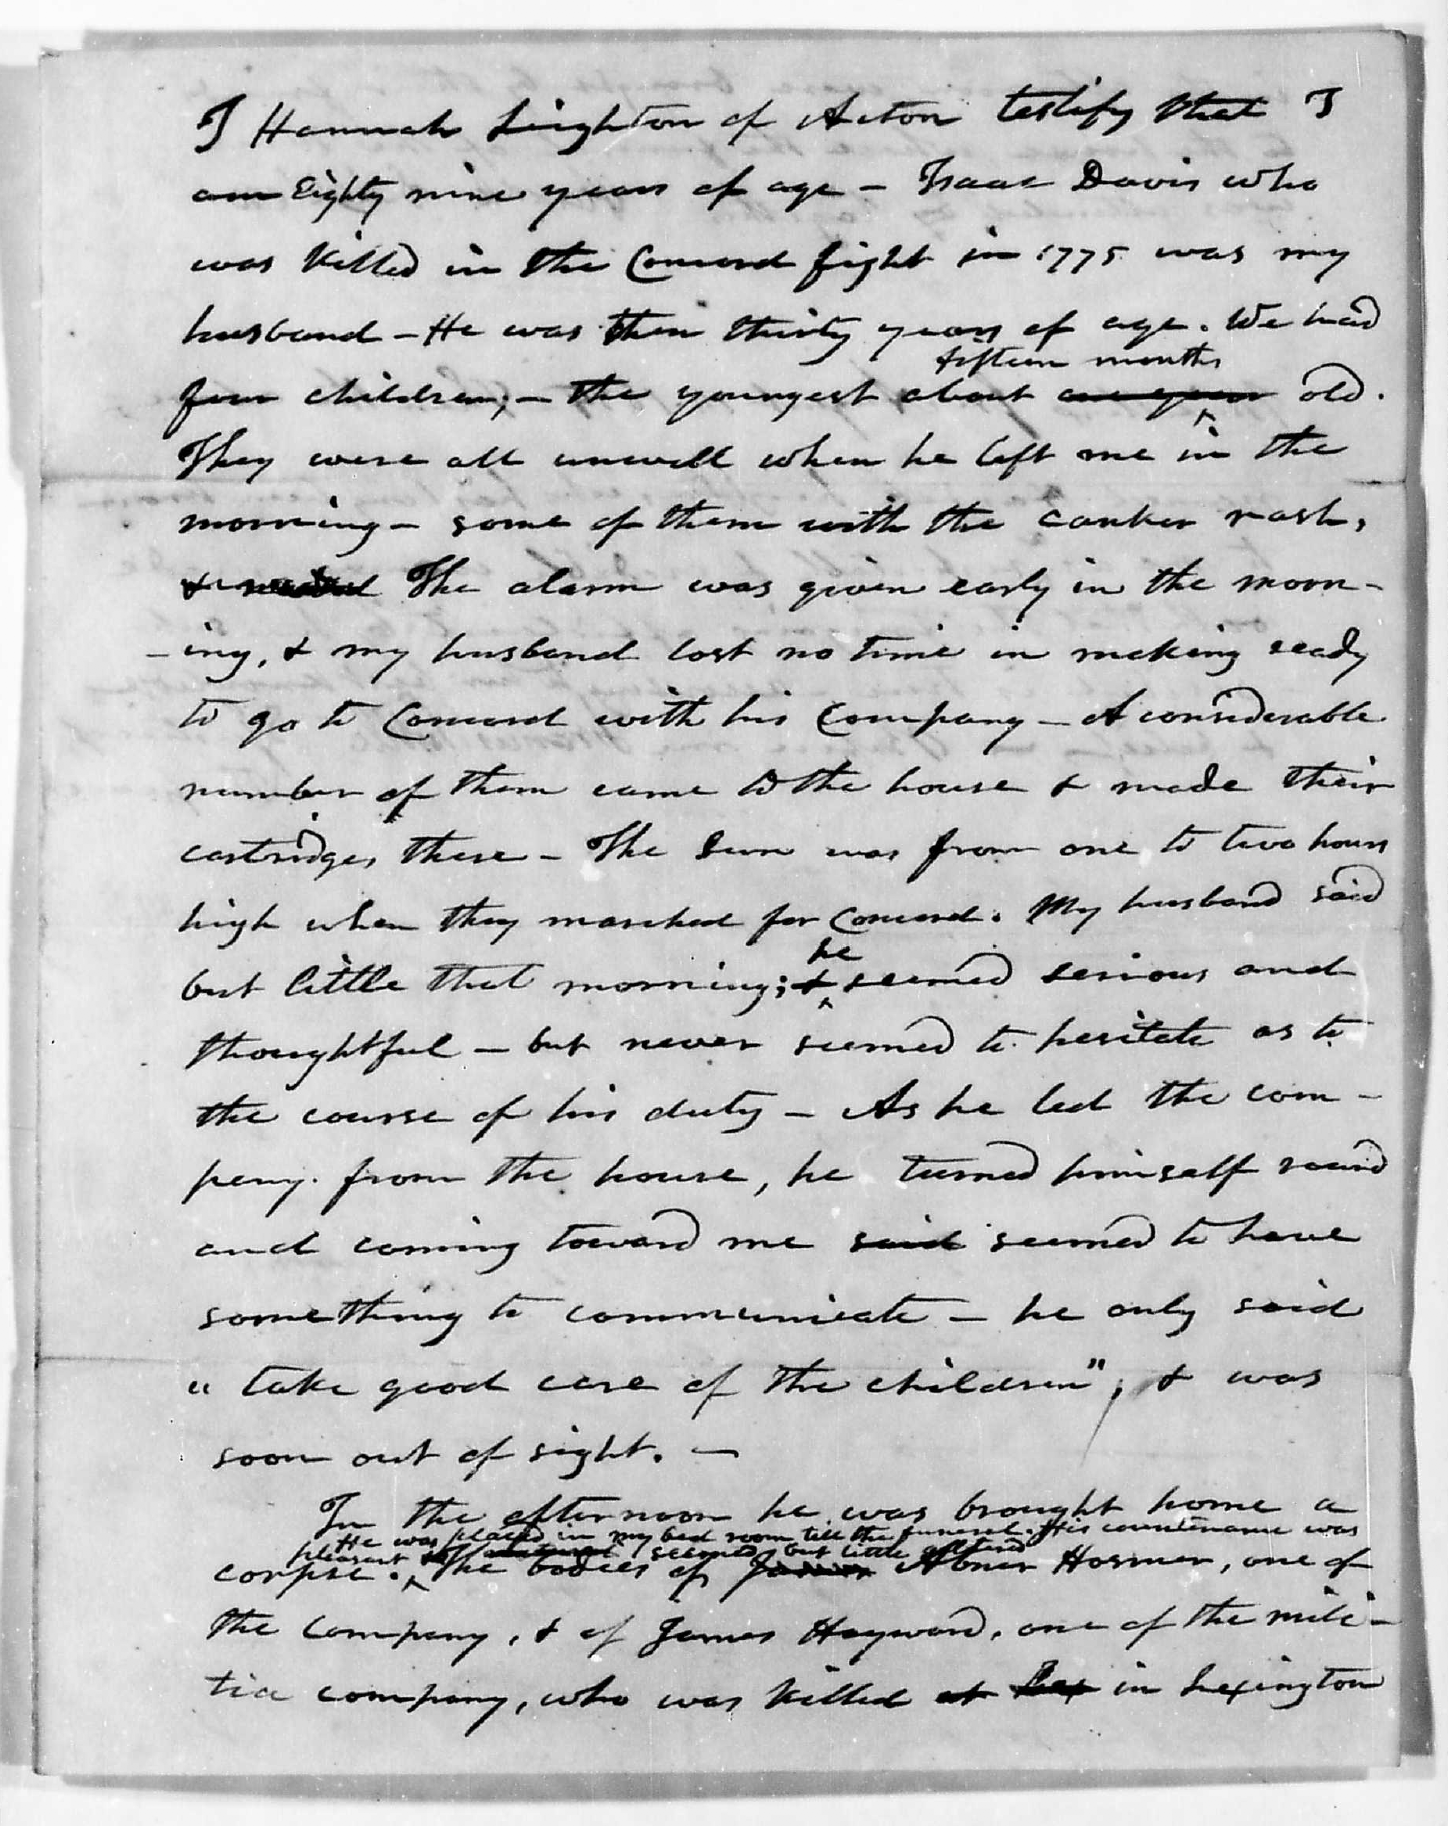 Hannah Leighton deposition page 1